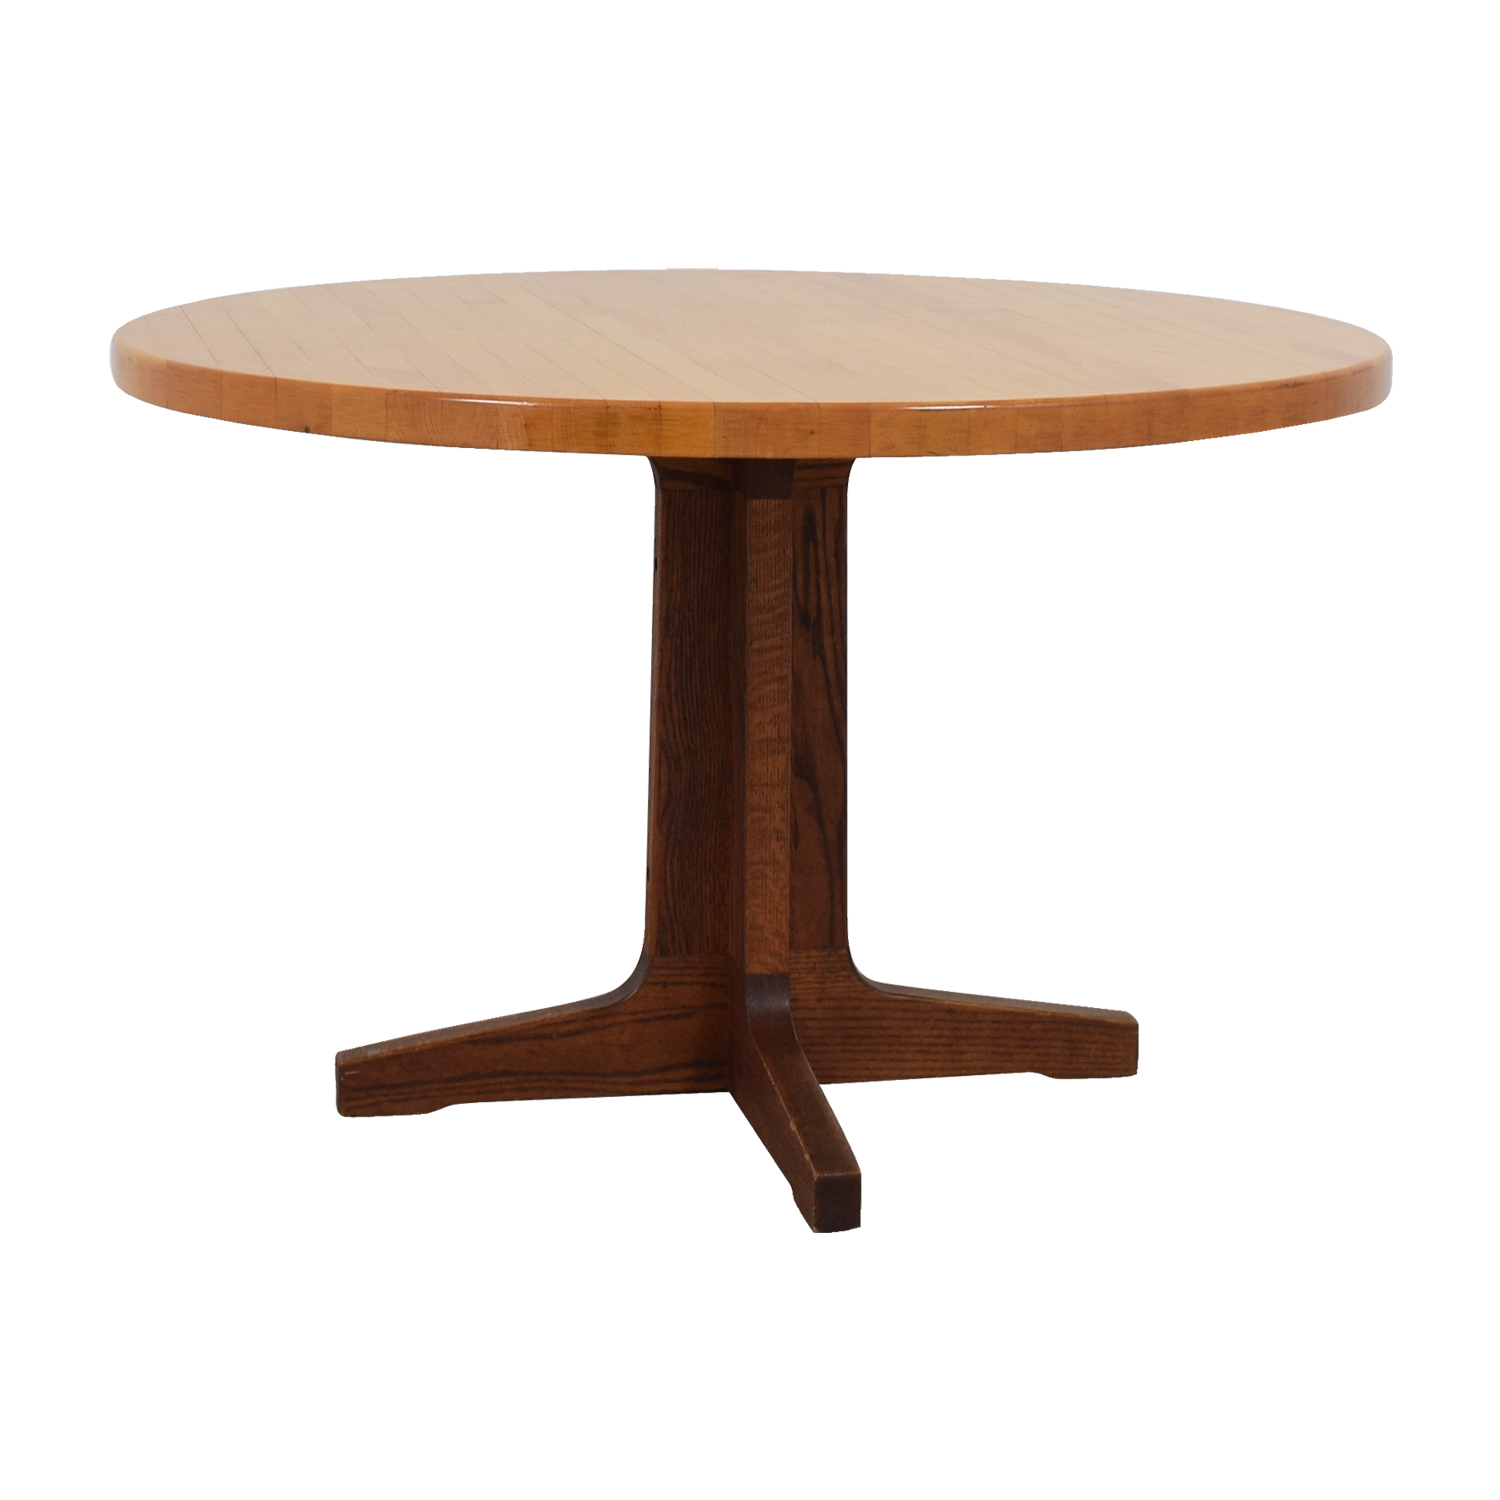 The Butcher Block Round Wood Table Used